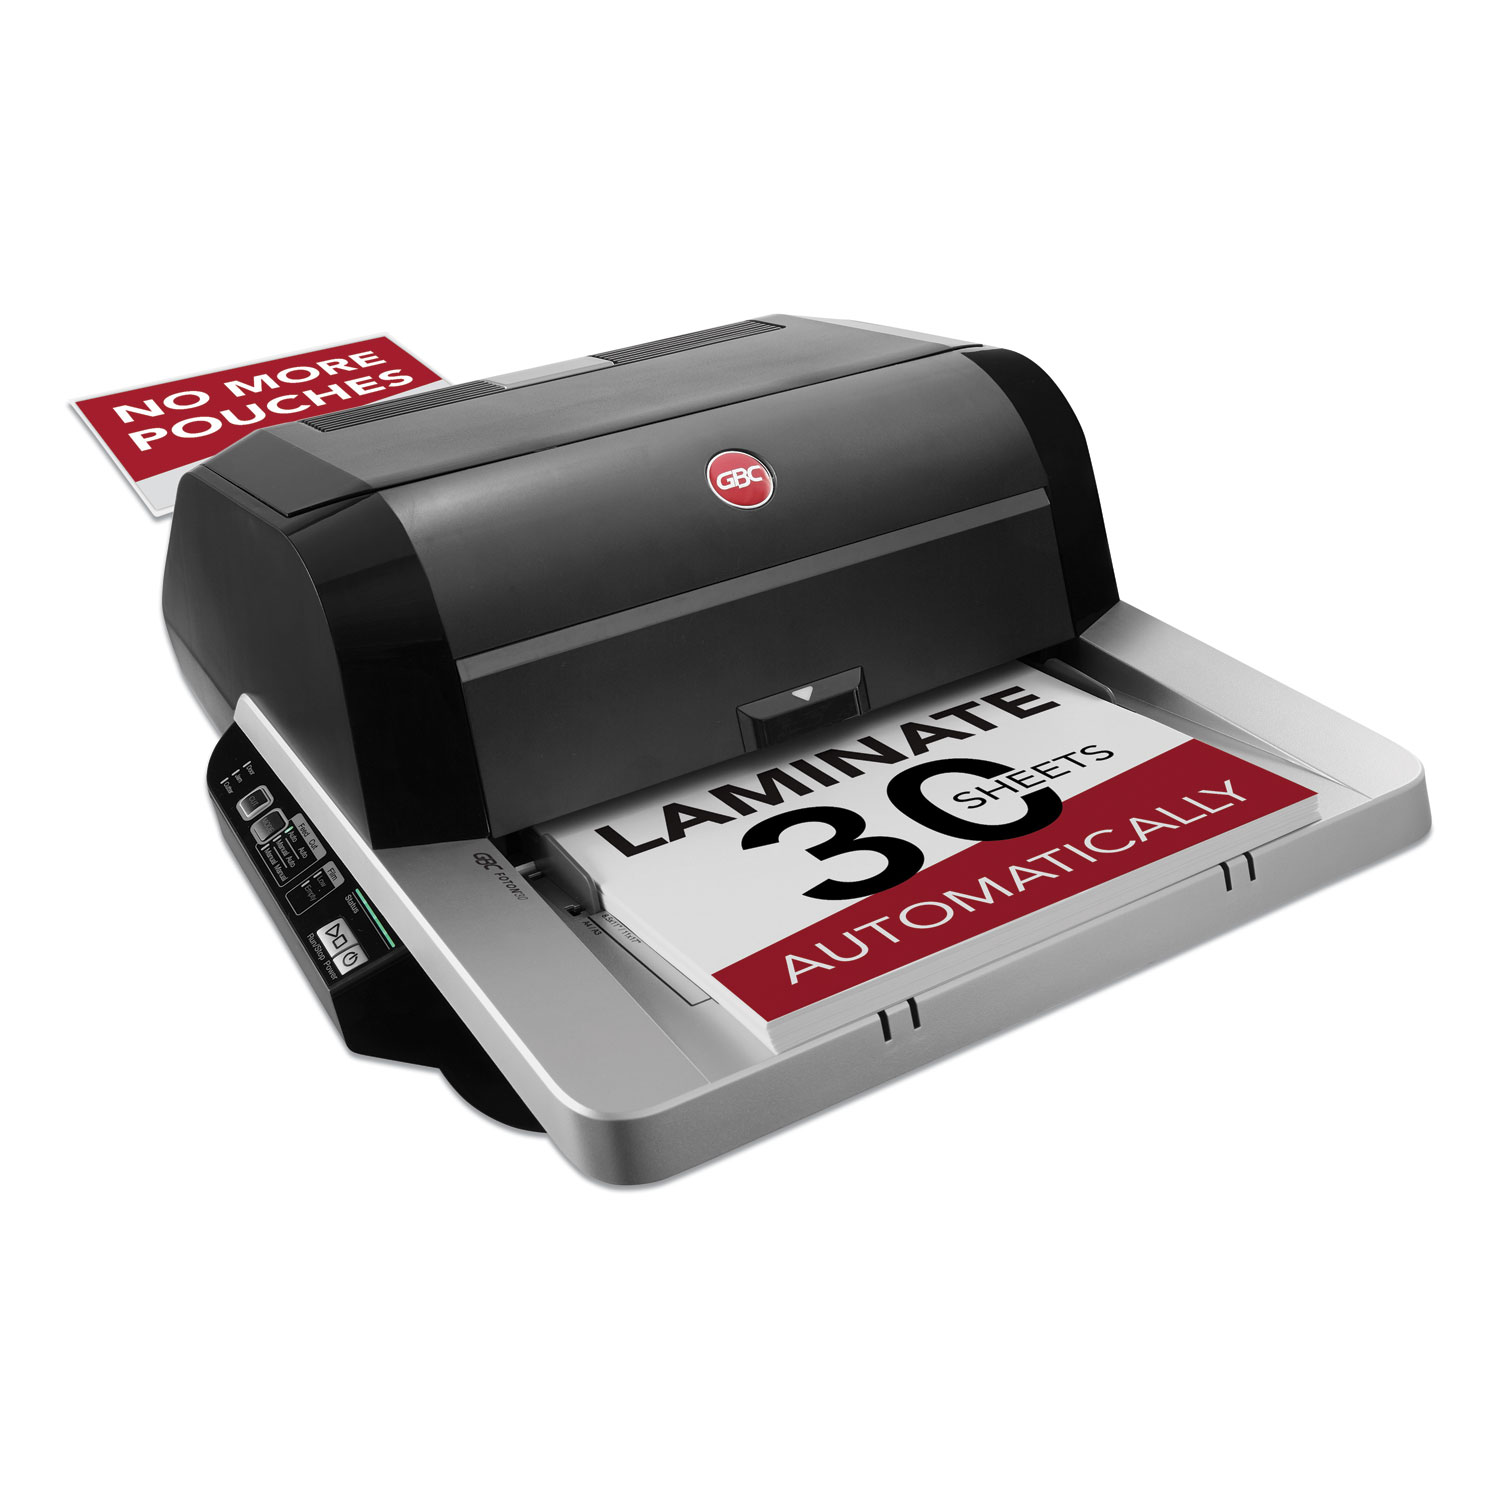 "Foton 30 Automated Pouch-Free Laminator, 1"" Max Document Width, 5 mil Max Document Thickness"